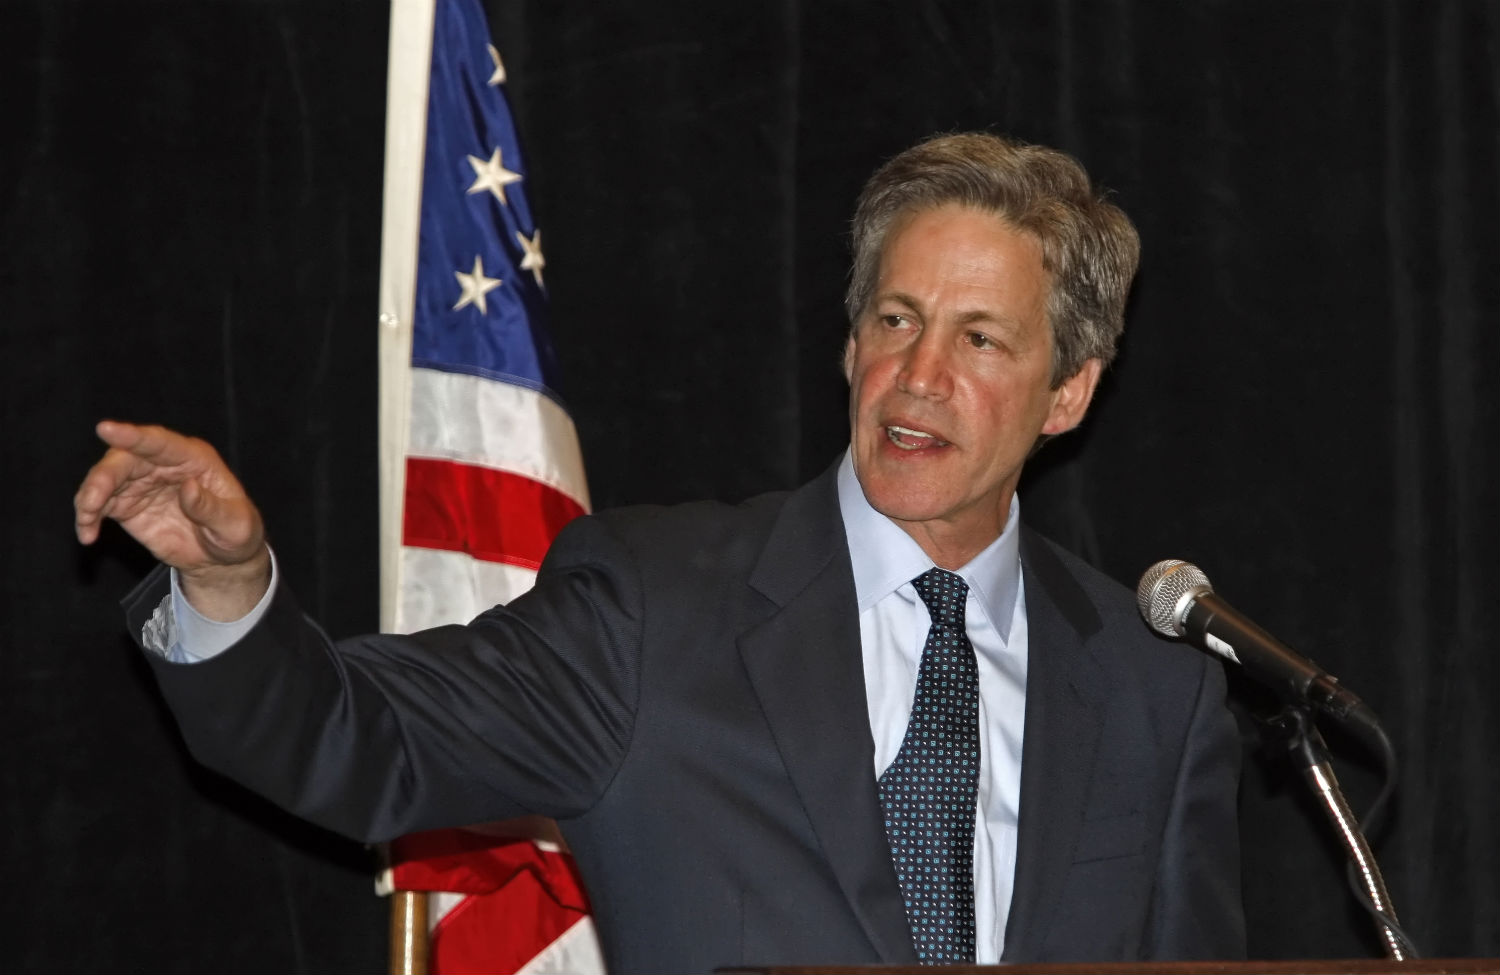 The-Saudi-Lobbying-Complex-Adds-a-New-Member-GOP-Super-PAC-Chair-Norm-Coleman